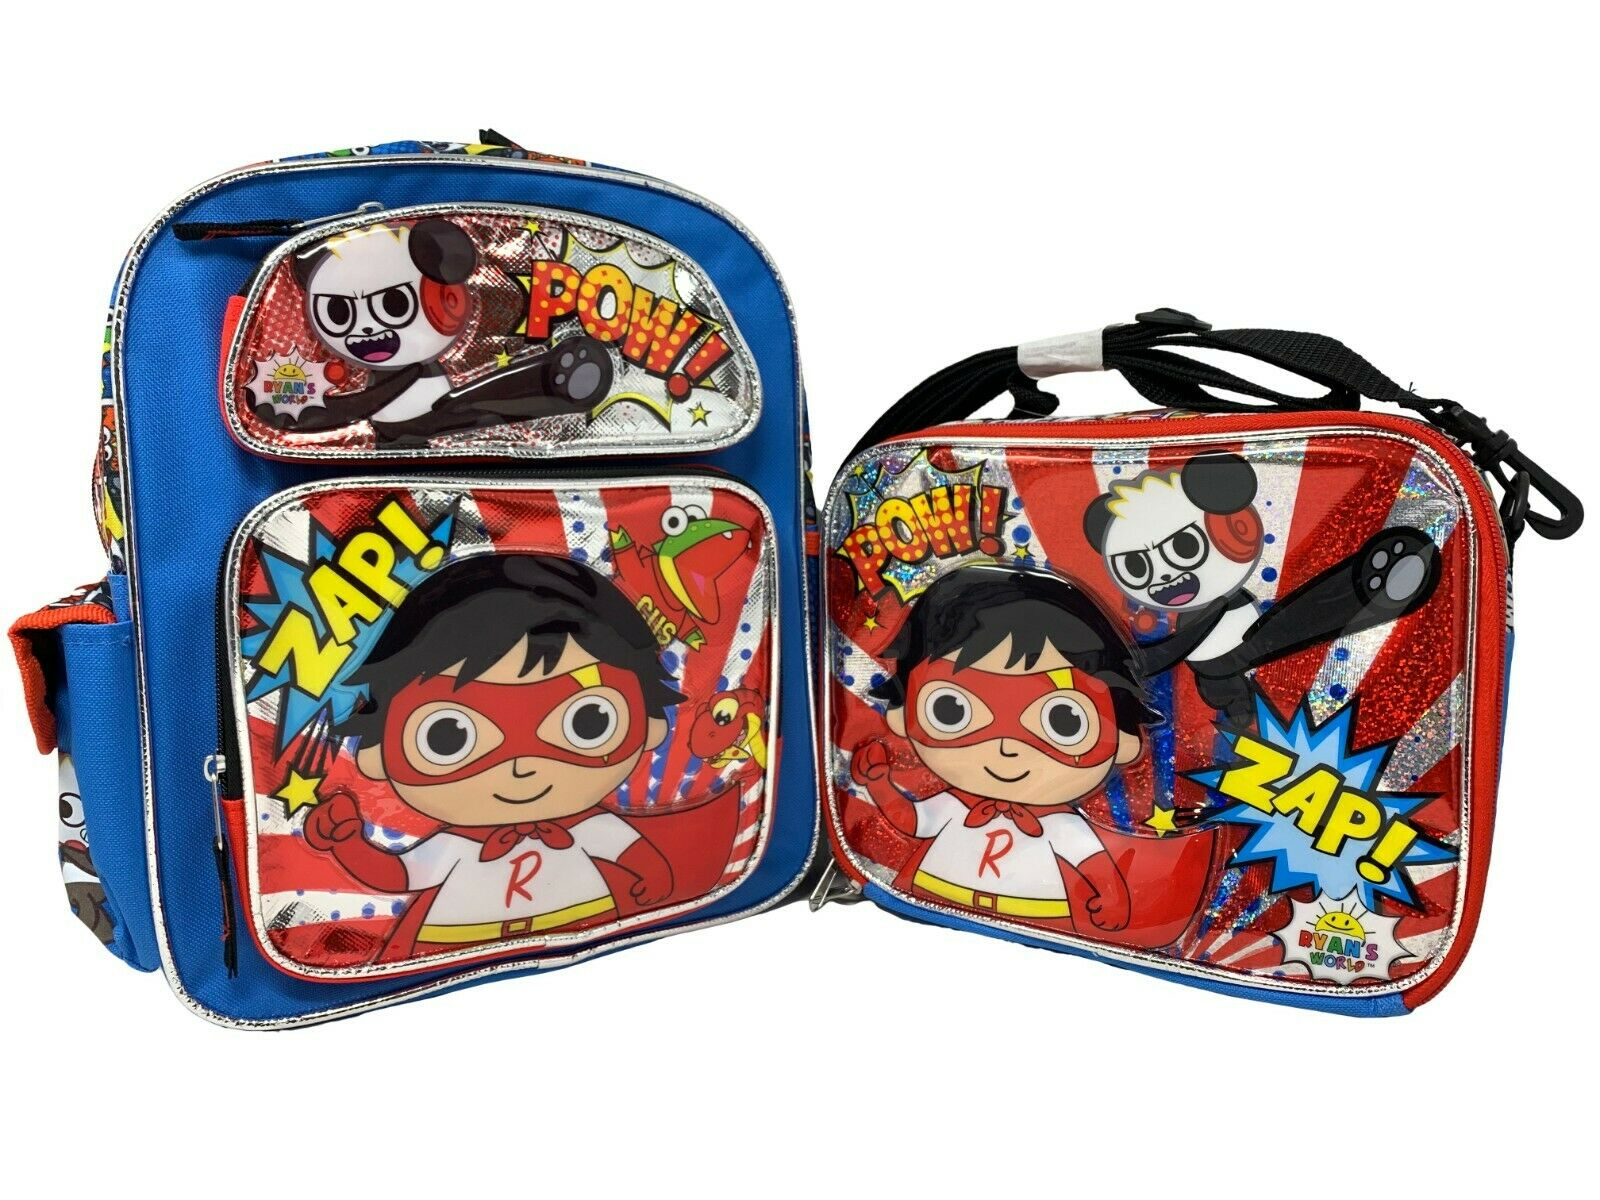 """Ryan/'s World 12/"""" Small School Backpack Book bag Plus Matching Lunch Bag"""